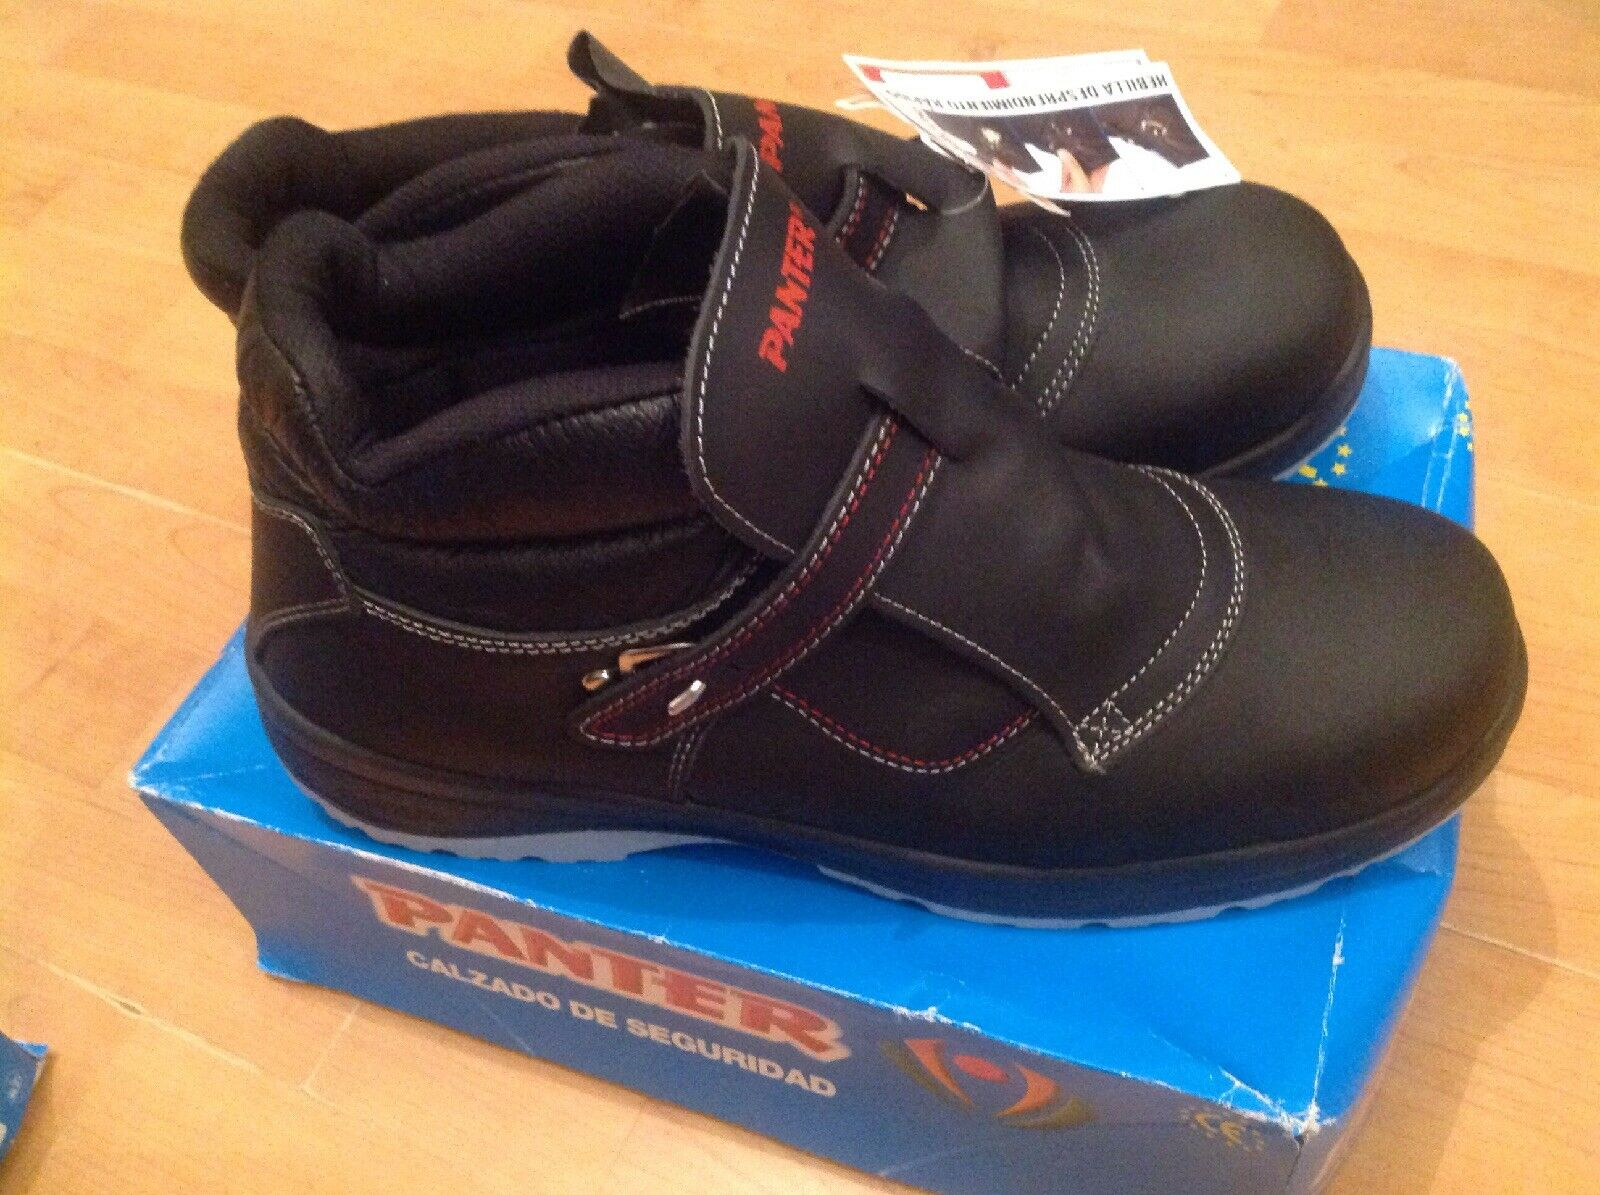 Mens Steel Toe Cap Panter Black red Boots Size 14 48 New Shop Clearance